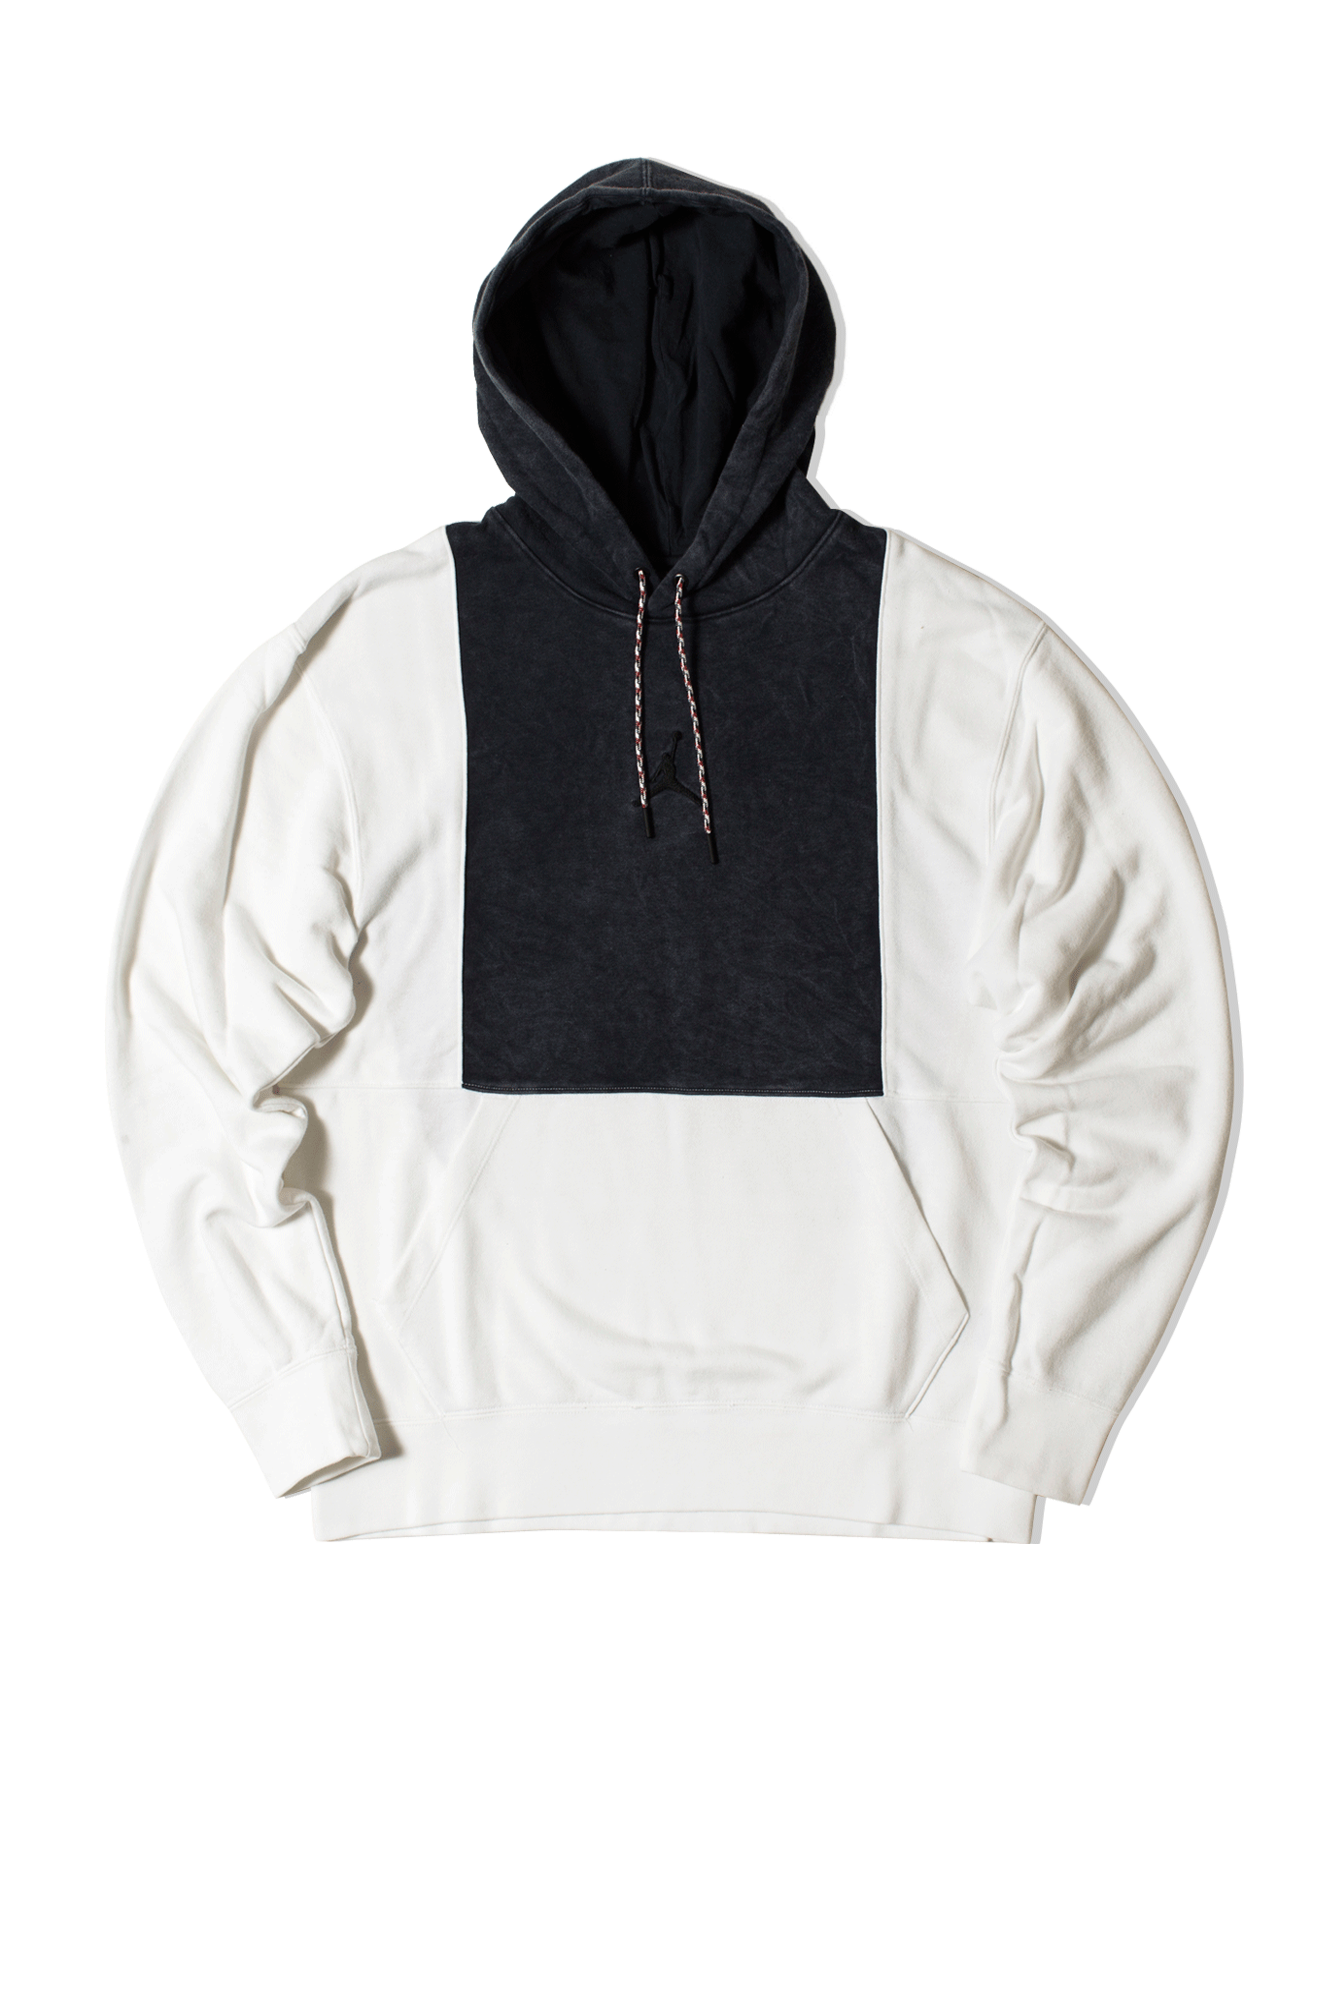 M J Lgc 1 Po Hooded Sweatshirt White